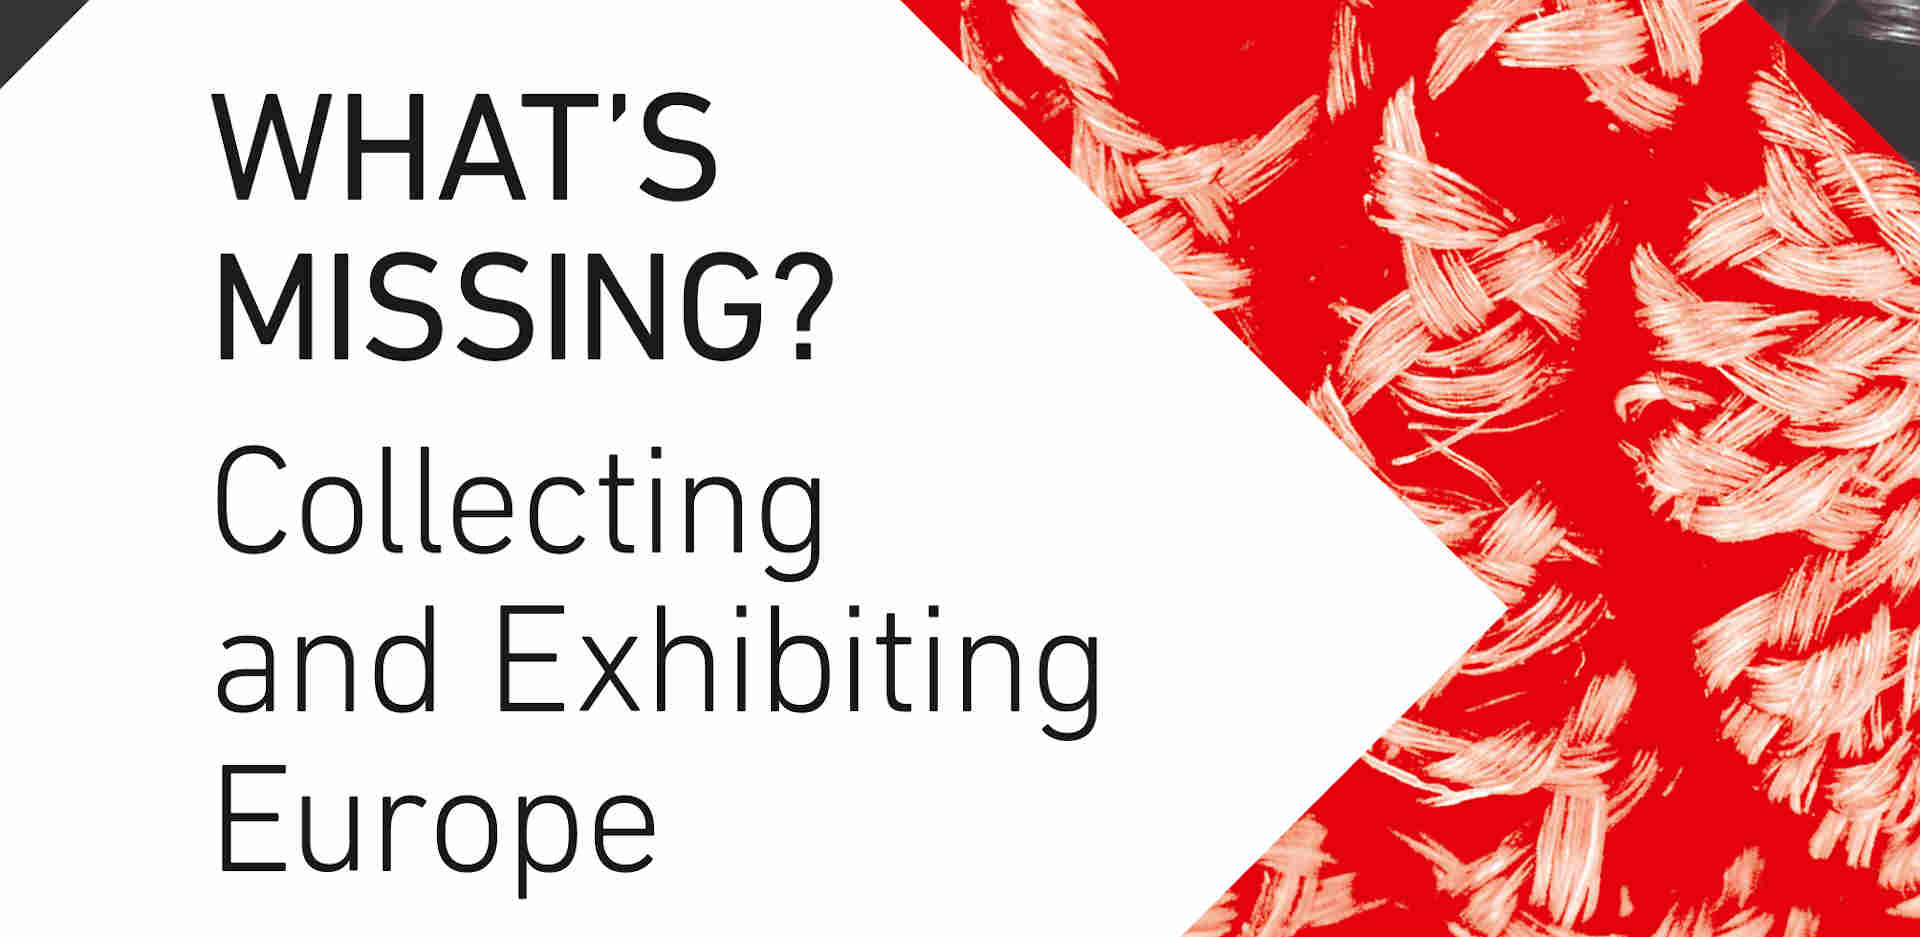 Iris Edenheiser, Elisabeth Tietmeyer, Susanne Boersma (Eds.), What's Missing? Collecting and Exhibiting Europe